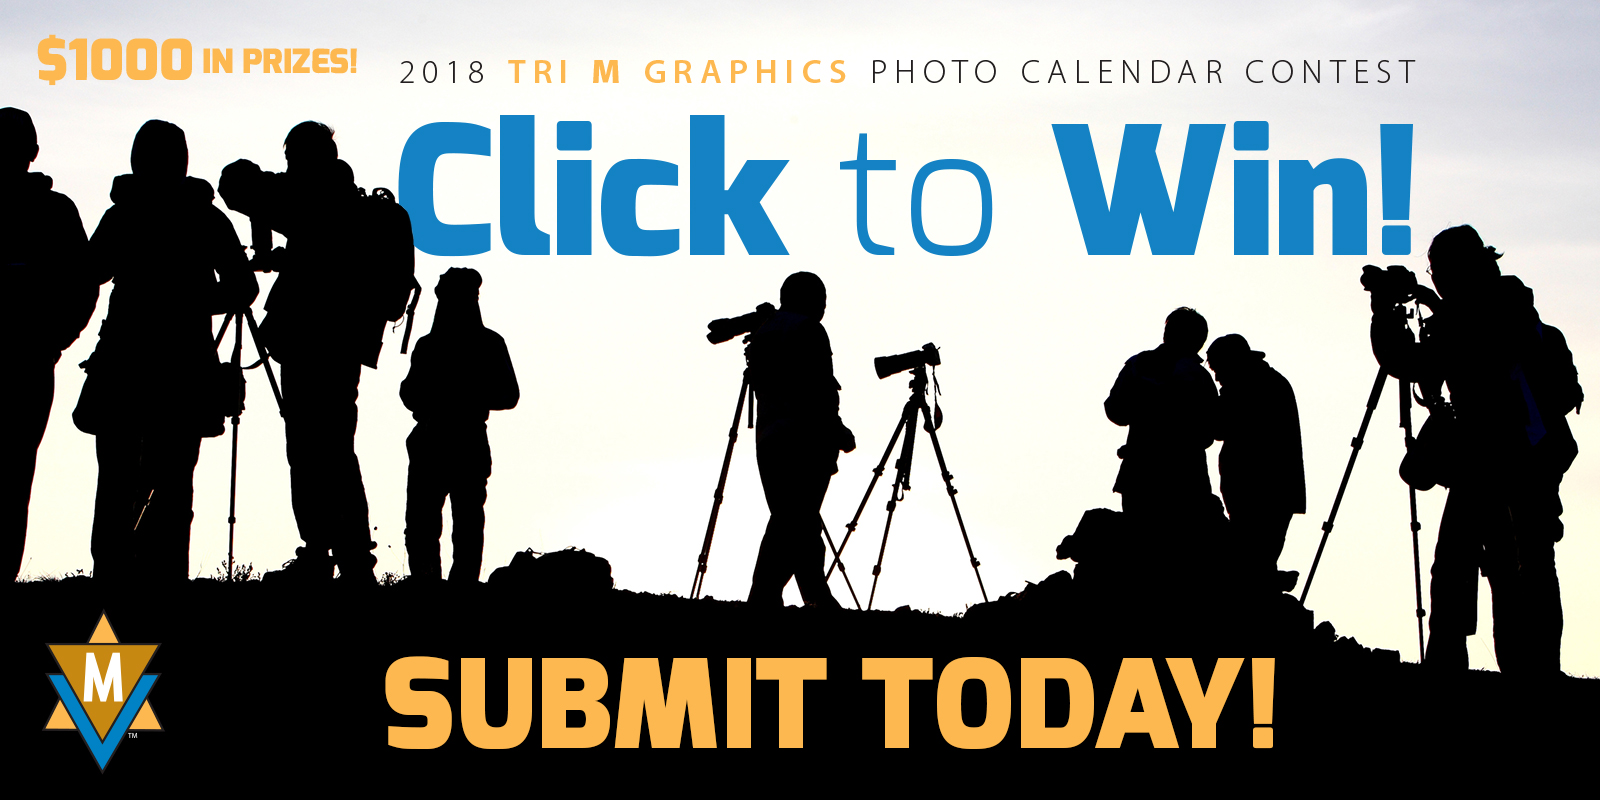 Tri M Graphics 2018 Photo Calendar Contest - logo